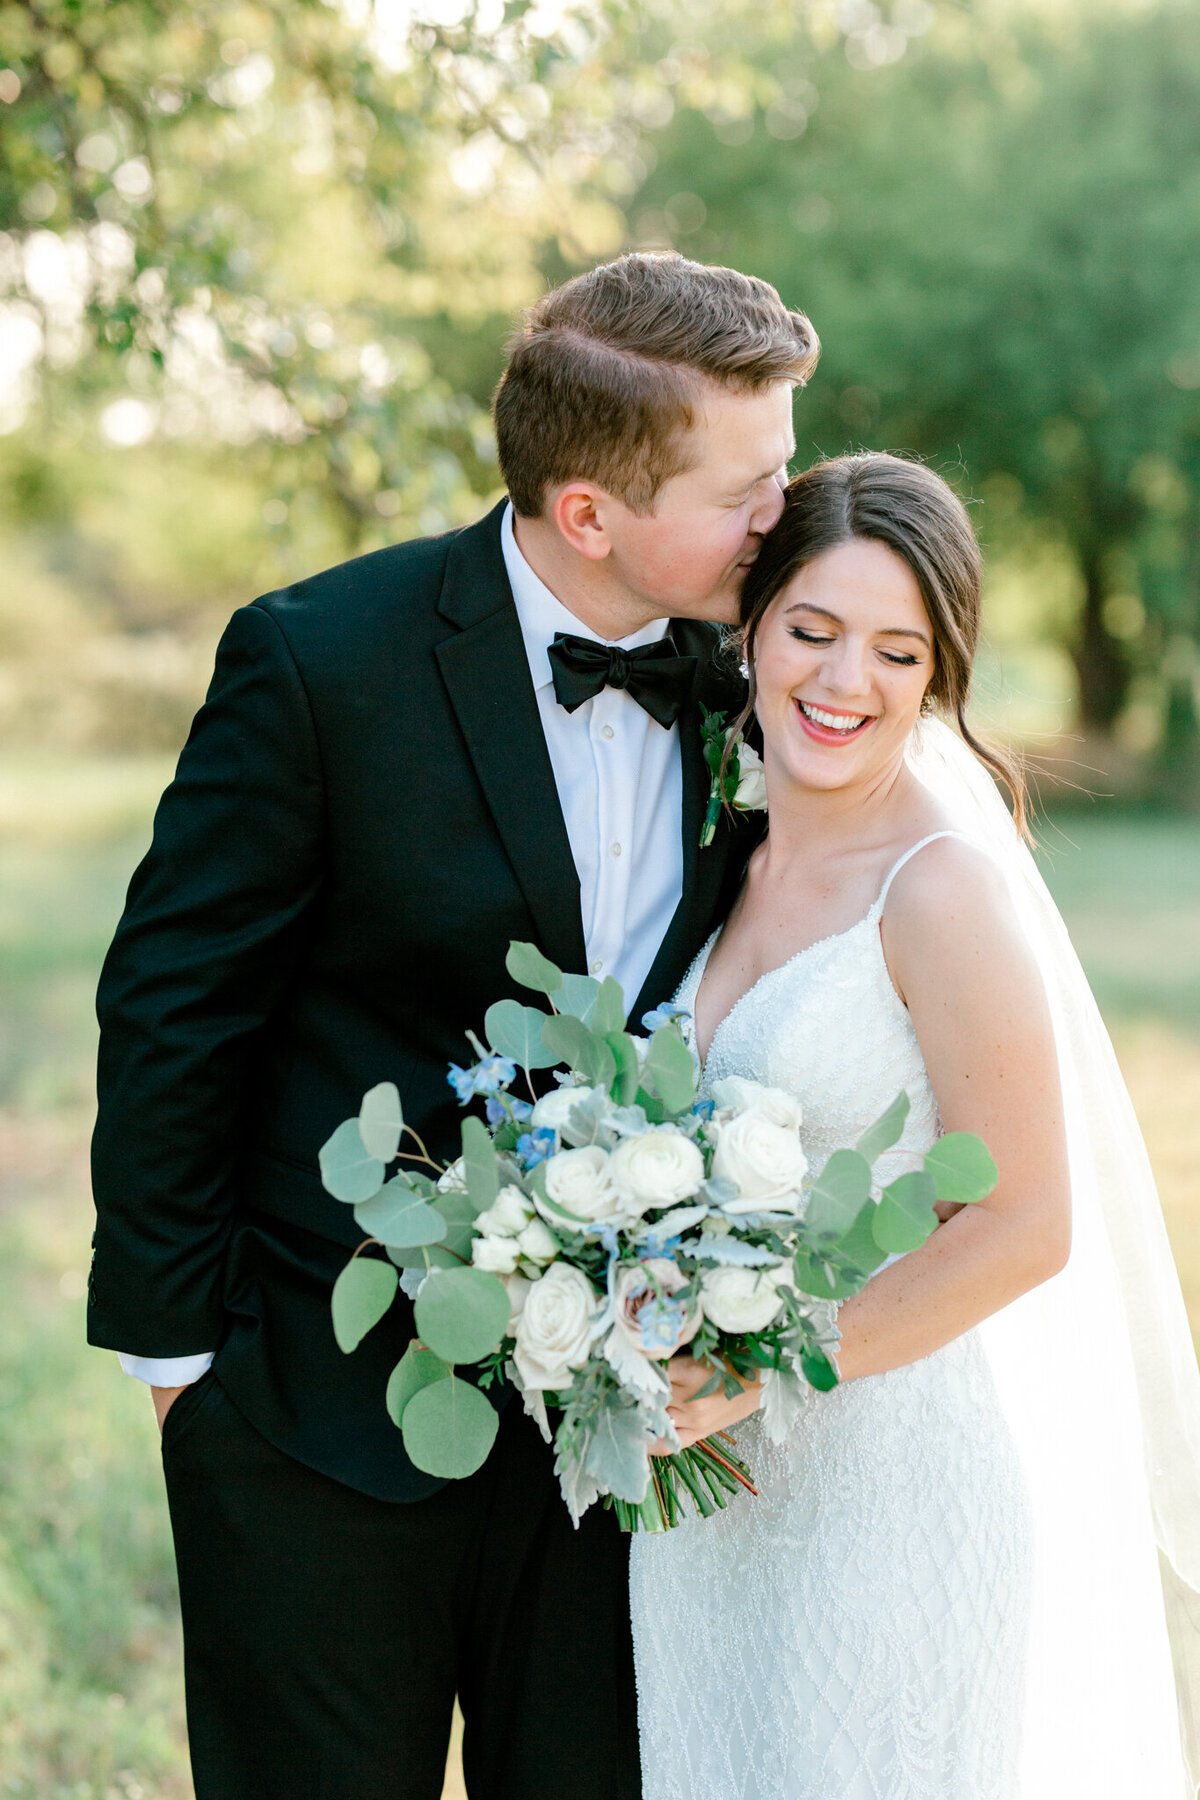 Anna & Billy's Wedding at The Nest at Ruth Farms | Dallas Wedding Photographer | Sami Kathryn Photography-5